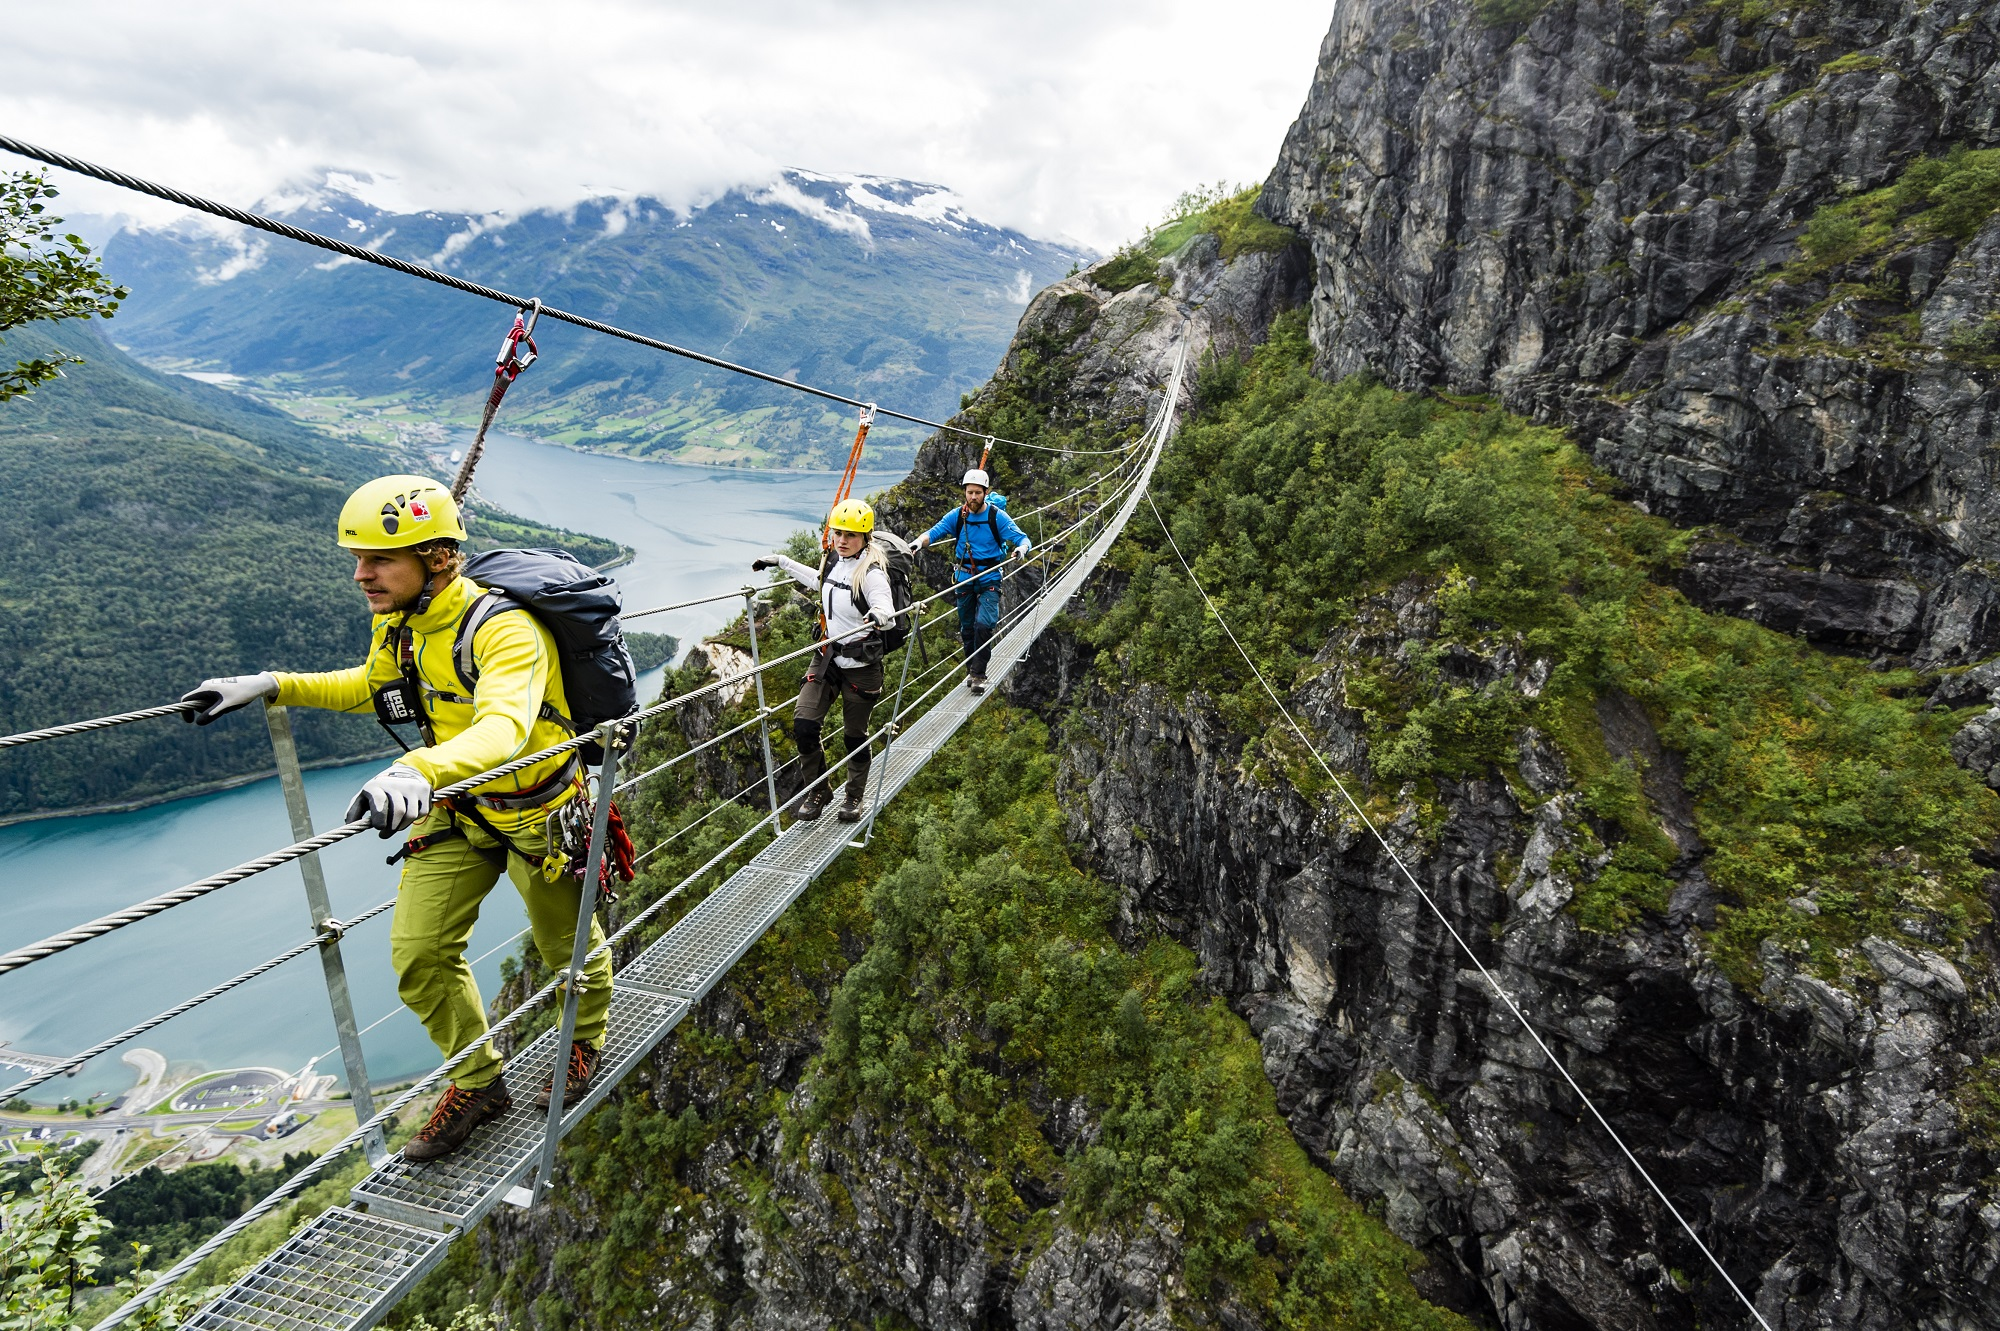 VIA FERRATA LOEN   Climb Mt. Hoven, high above the fjord, surrounded by the mountains and the Jostedalsbreen National Park. The view is unbelievable. Guided tours by Loen Active. See photos.